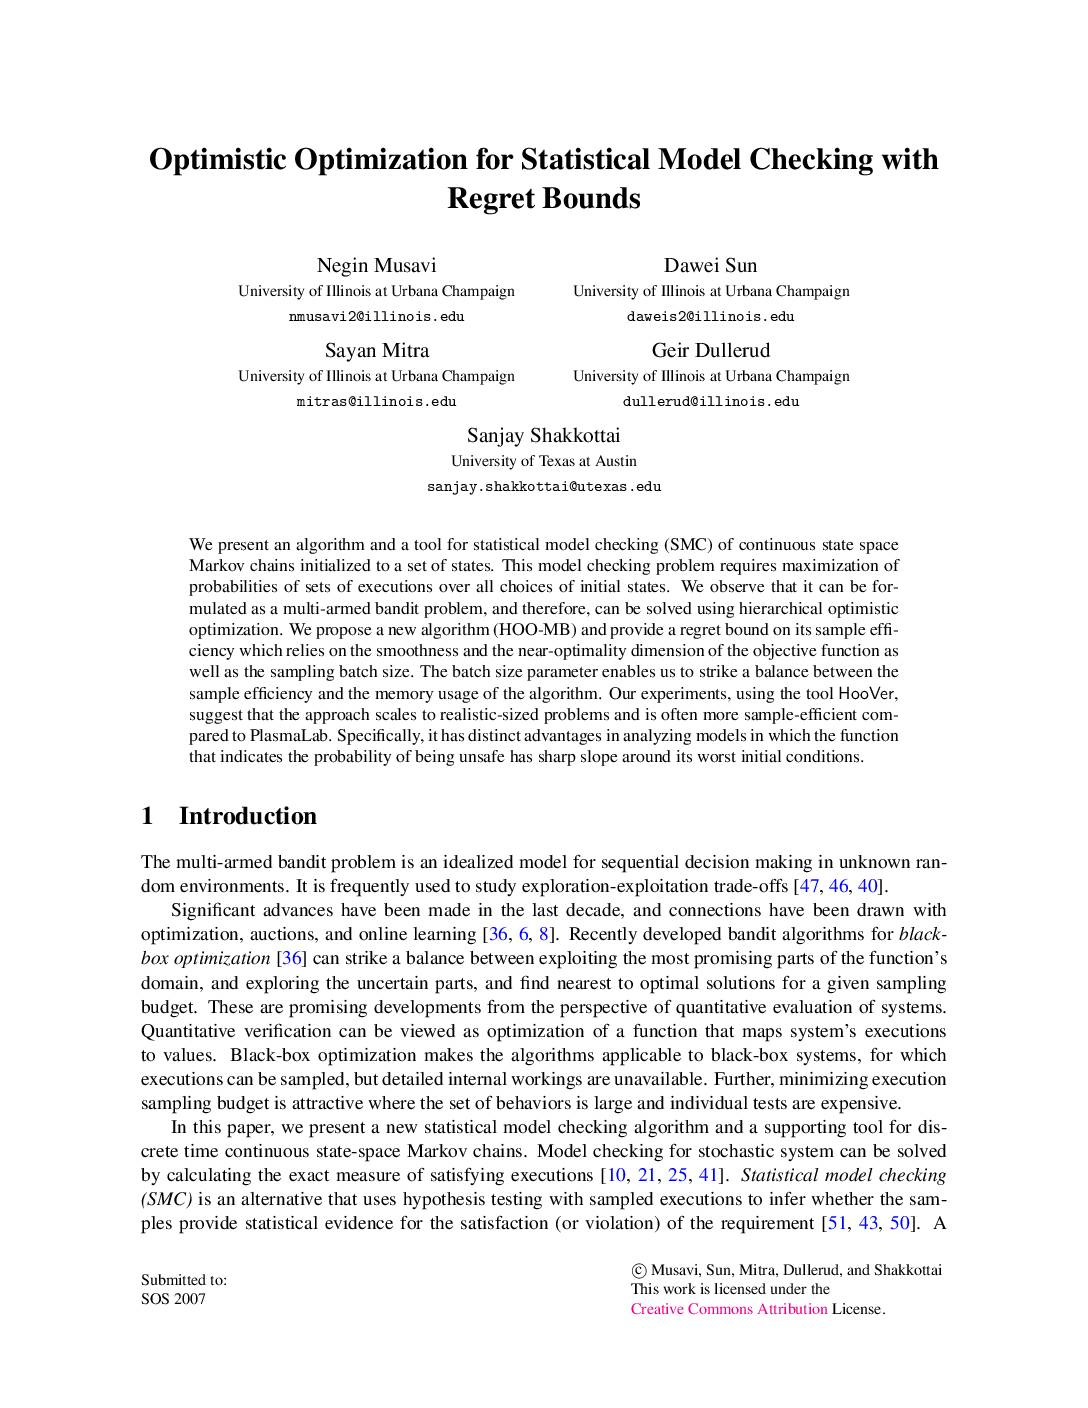 Optimistic Optimization for Statistical Model Checking with Regret Bounds